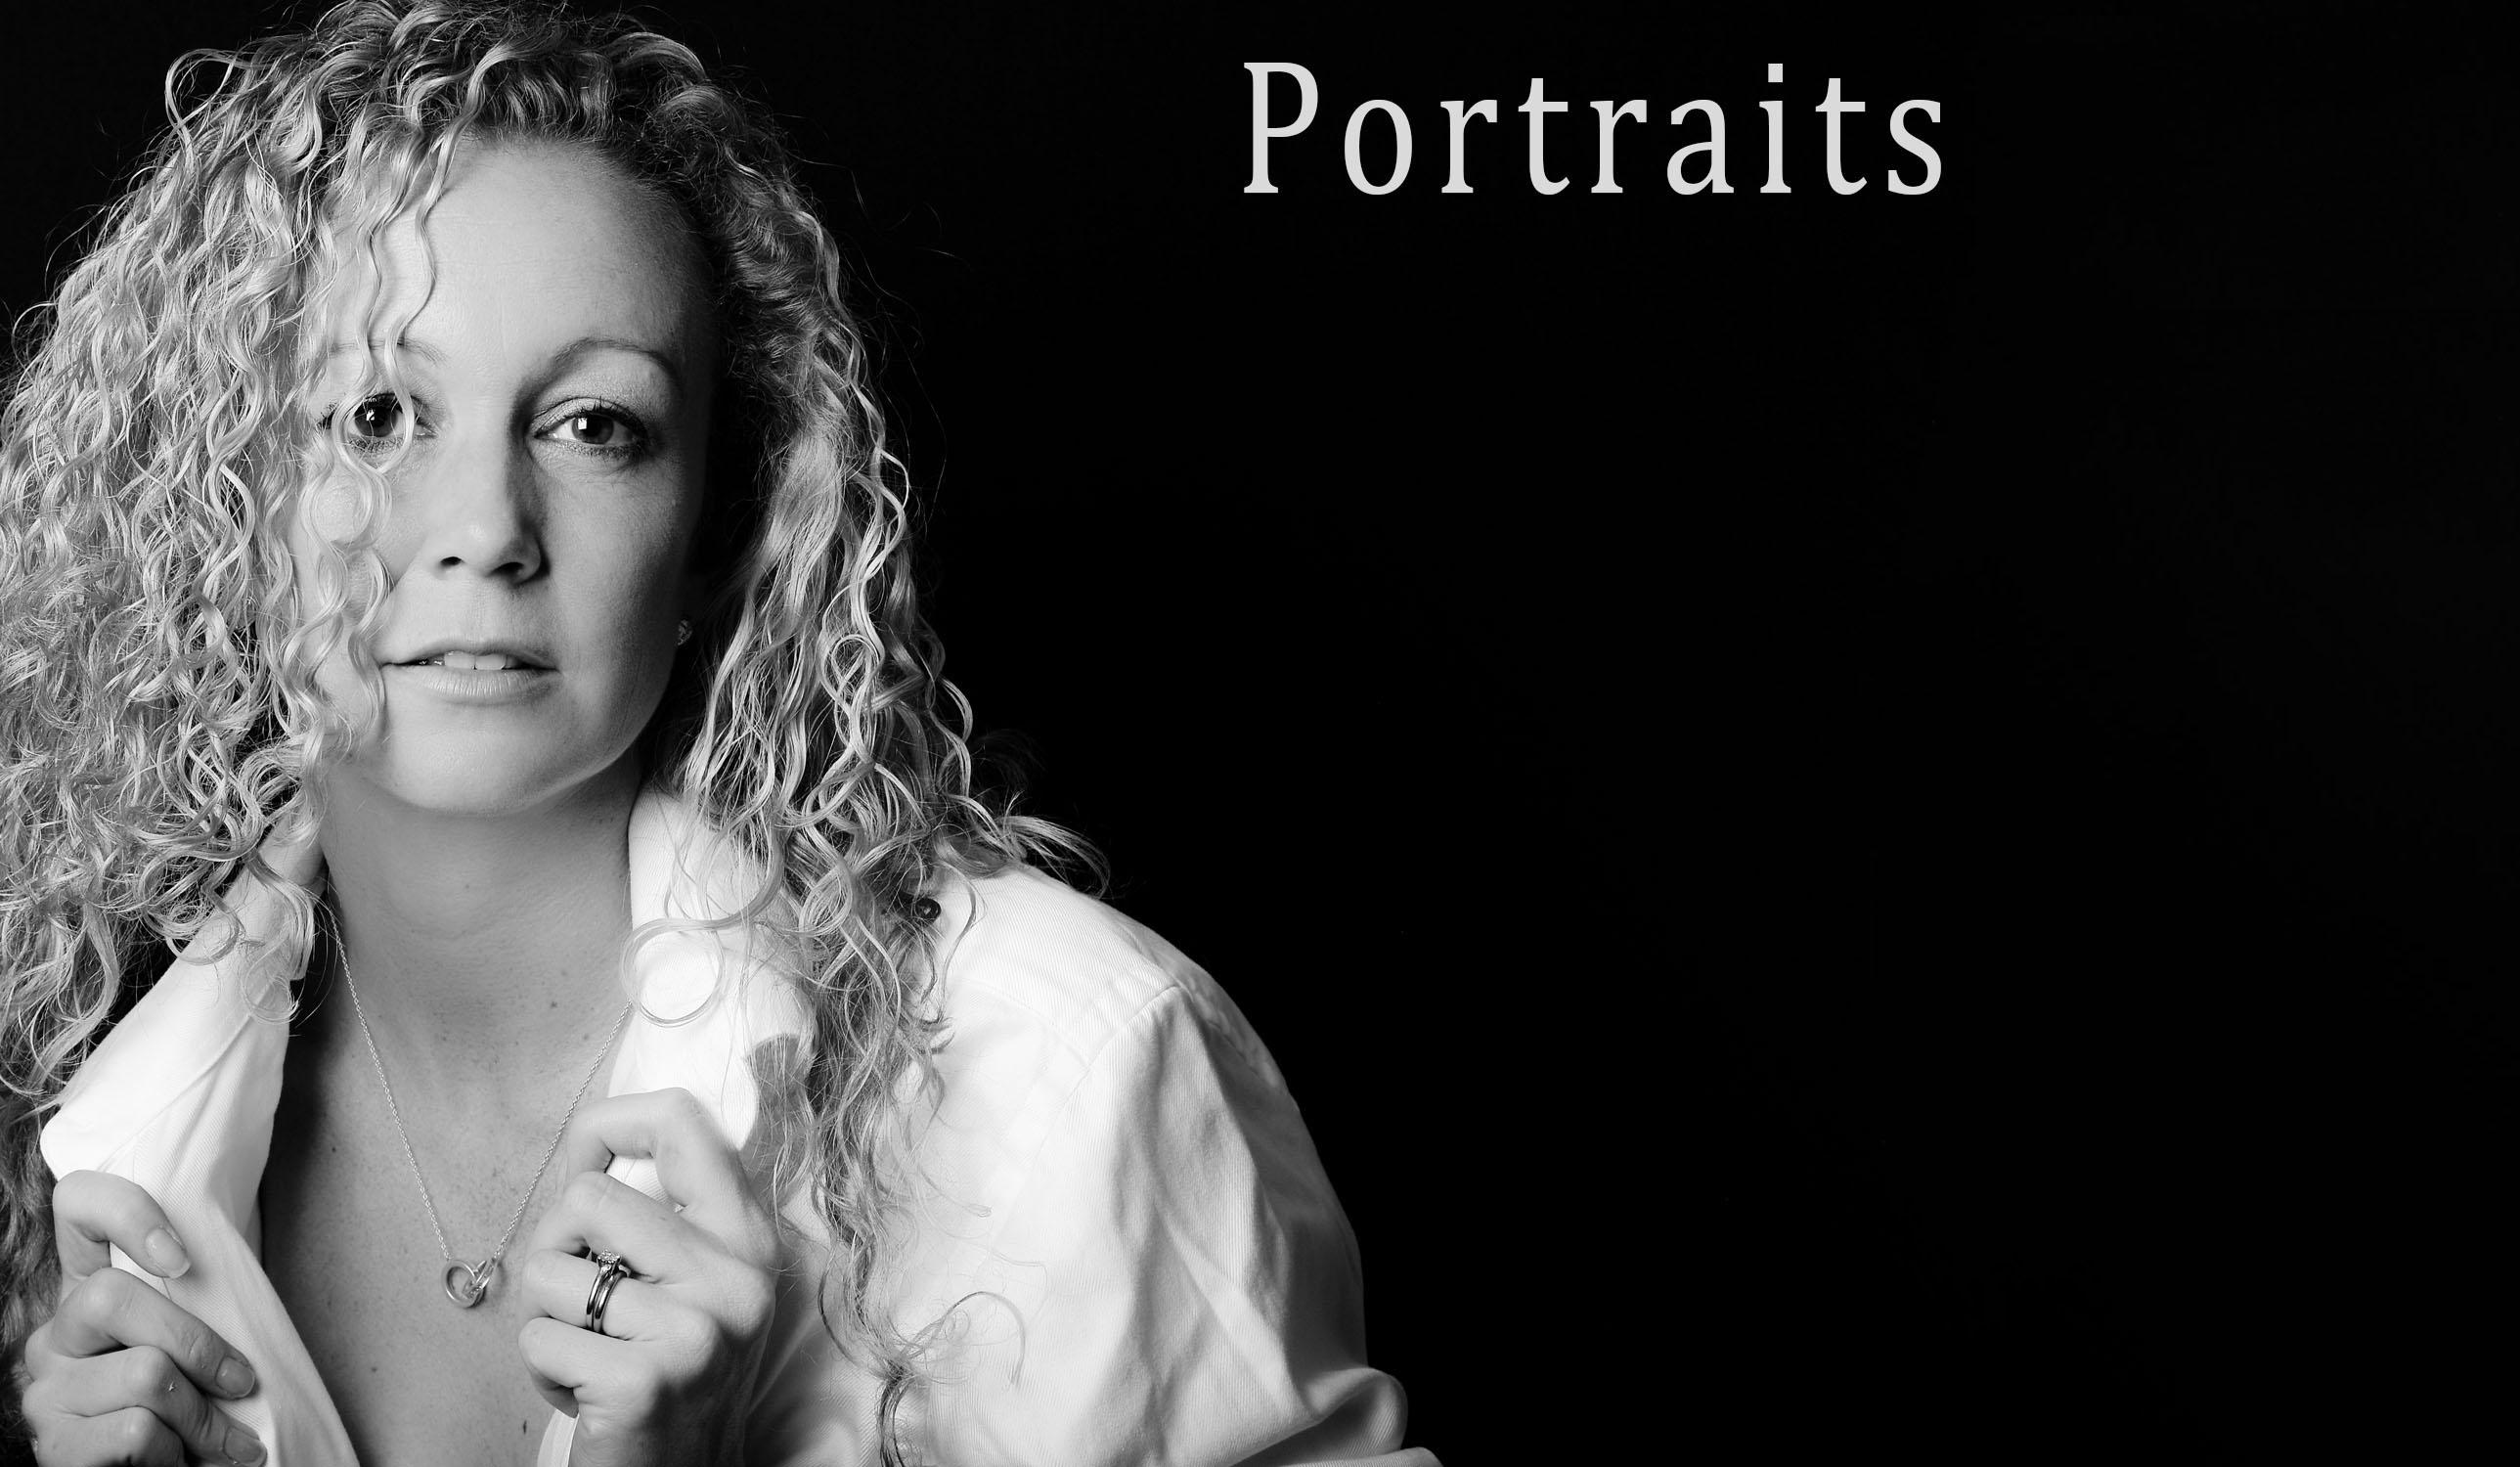 NS photography - portraits 2